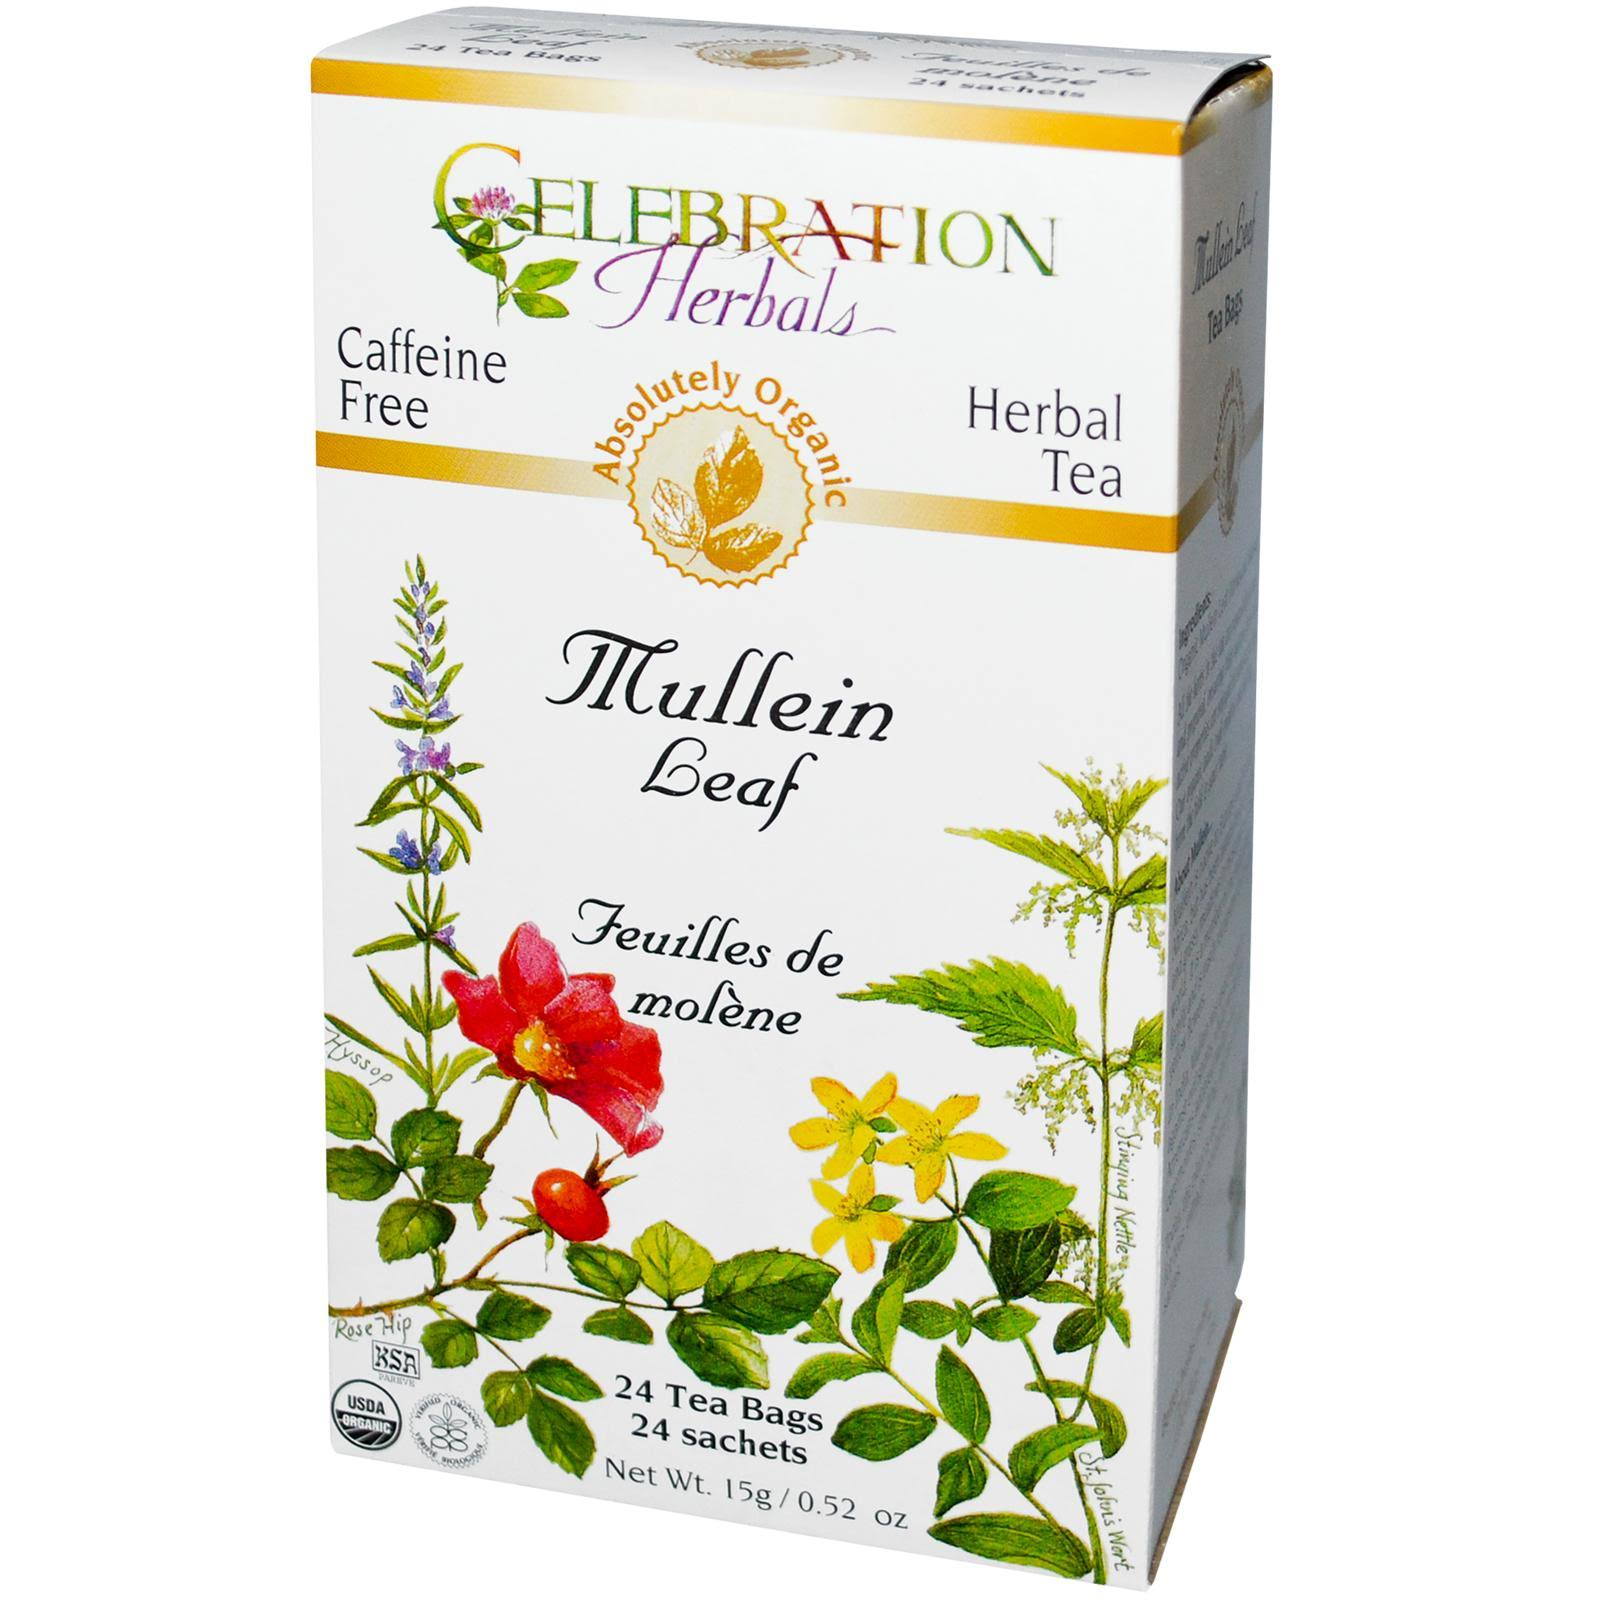 Celebration Herbals Organic Mullein Leaf Tea - 24 tea bags